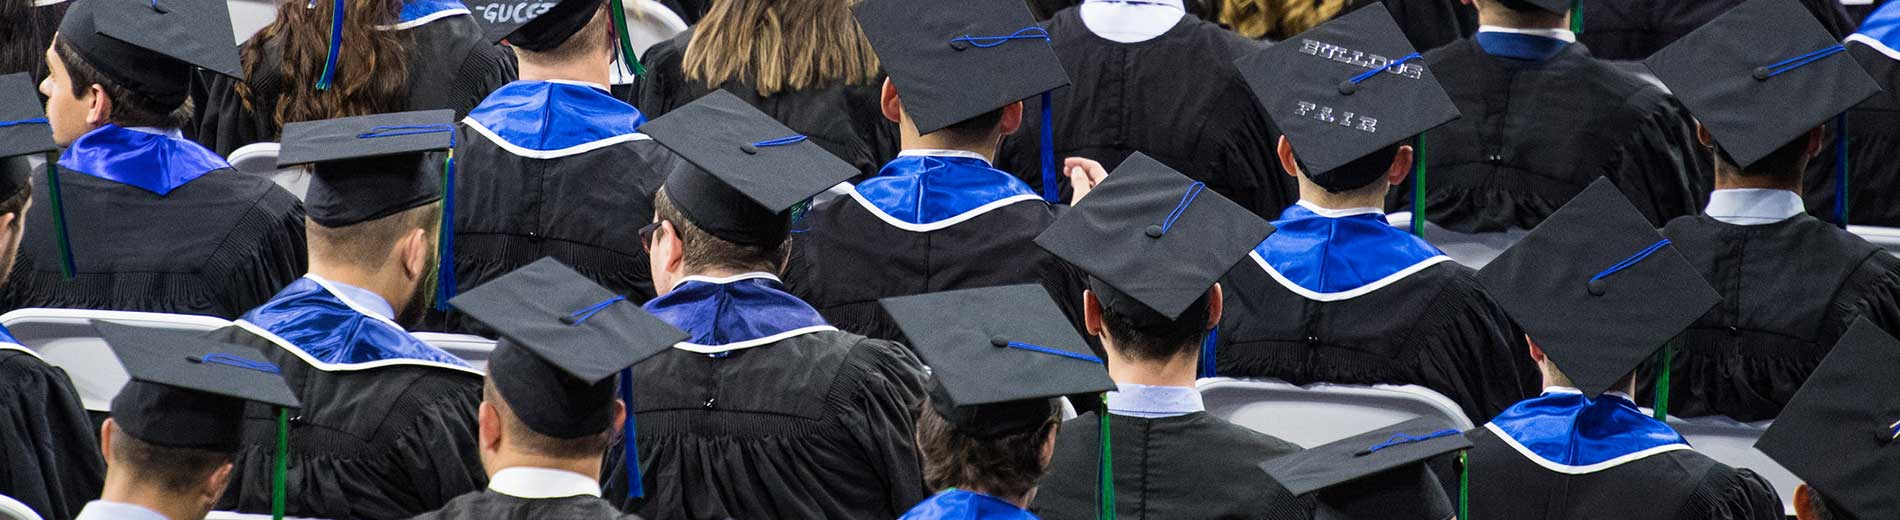 Photo shows FGCU commencement